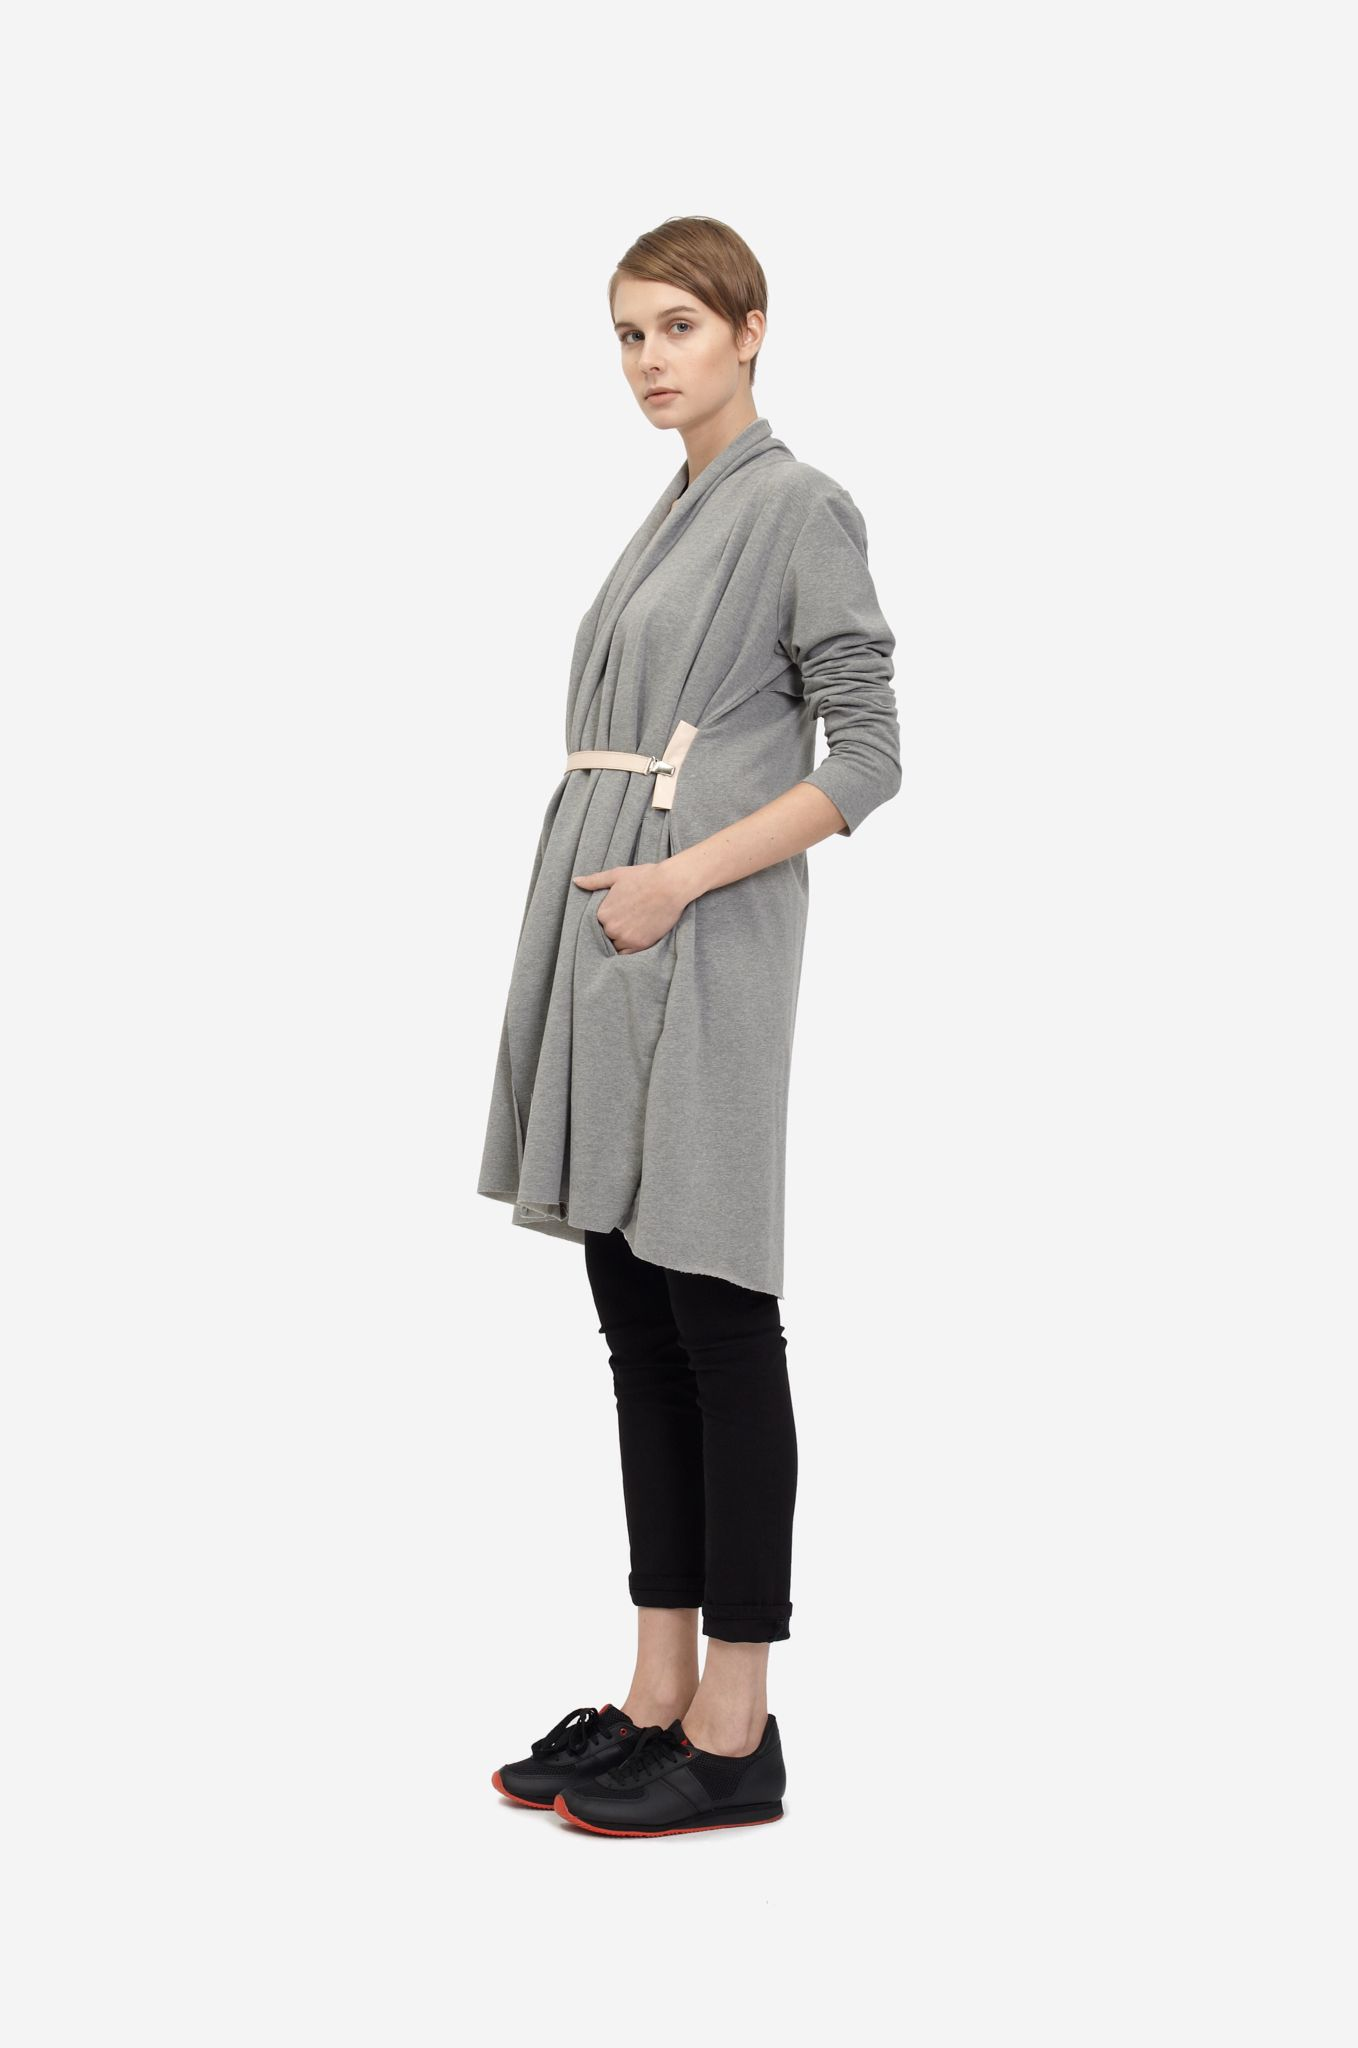 COTTON COAT Shorthaired model wearing a grey cotton coat with nude clip belt and sneakers. Design: Lucie Kutálková / LEEDA